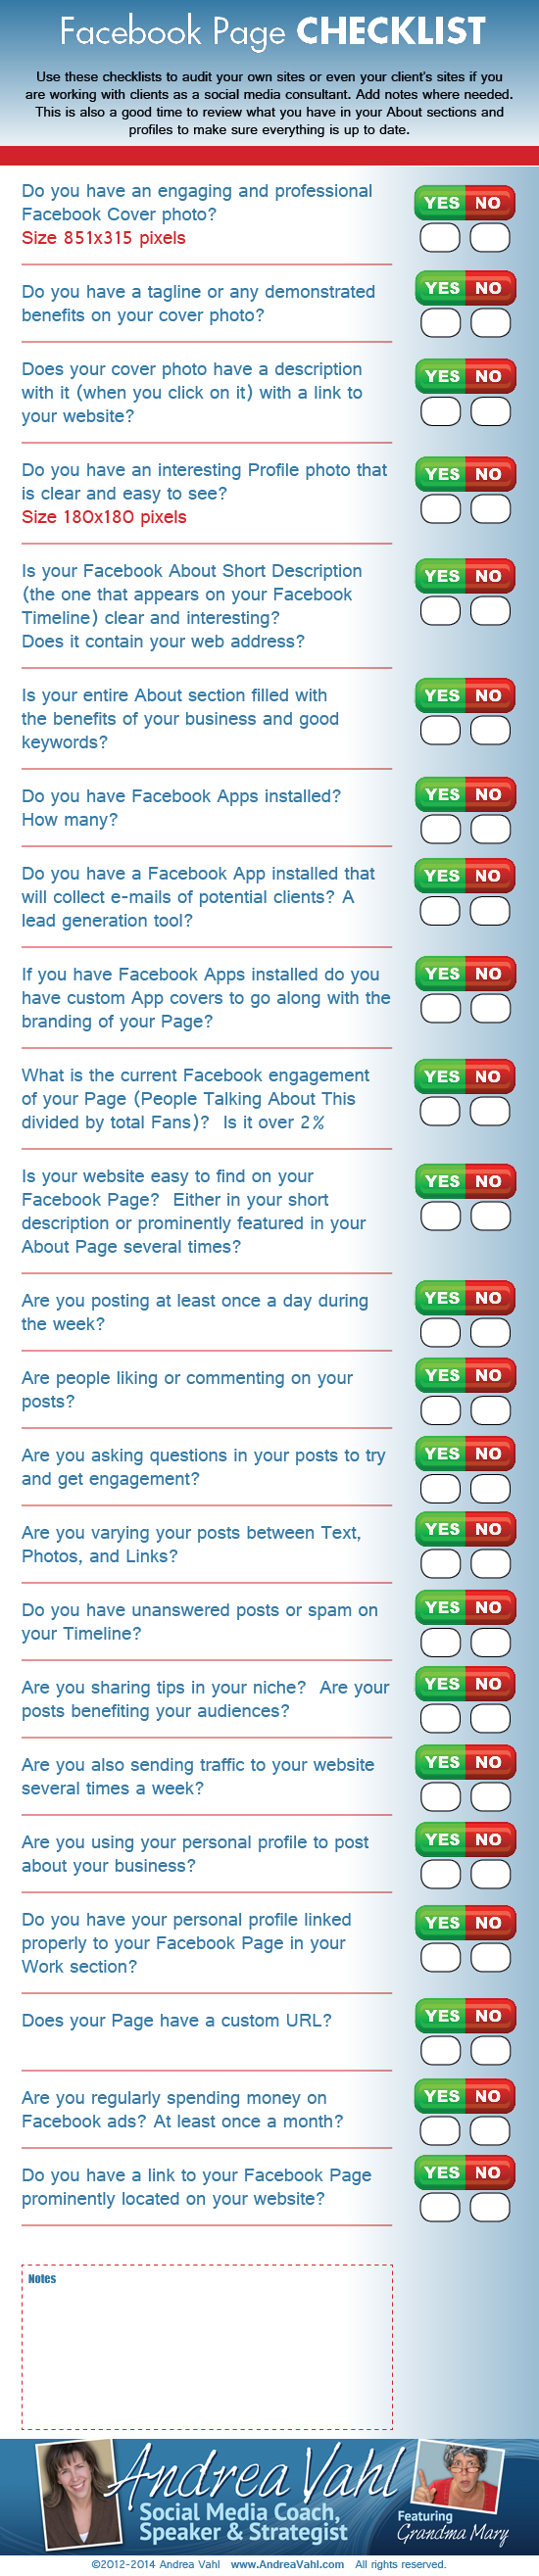 Facebook Checklist For #SocialMedia Marketers #infographic